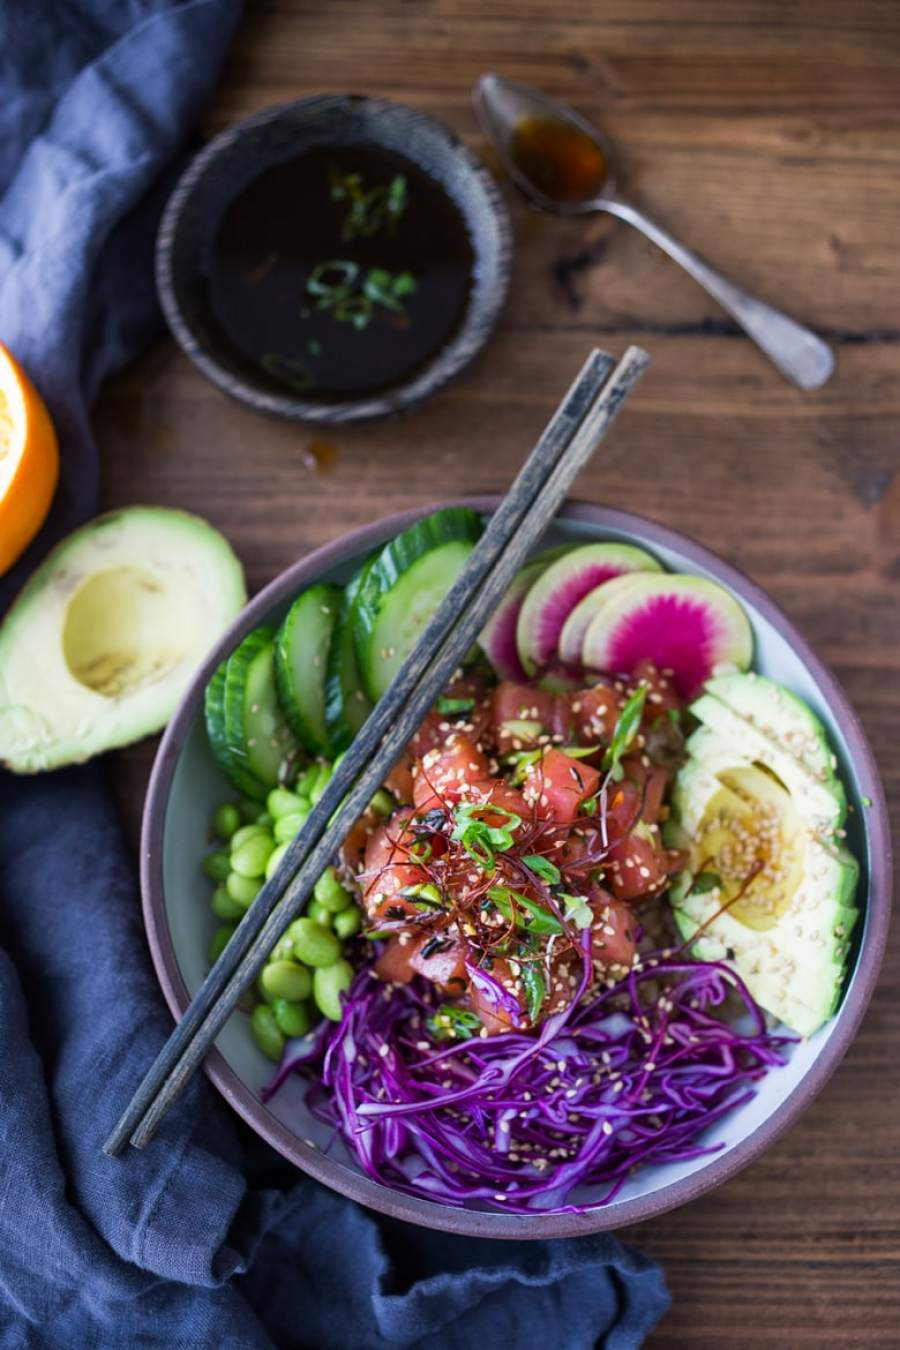 Healthy Poke Bowl- made with ahi tuna (or TOFU!) served over brown rice or kelp noodles, with avocado, cucumber, radish and Citrus Ponzu Sauce! | www.feastingathome.com